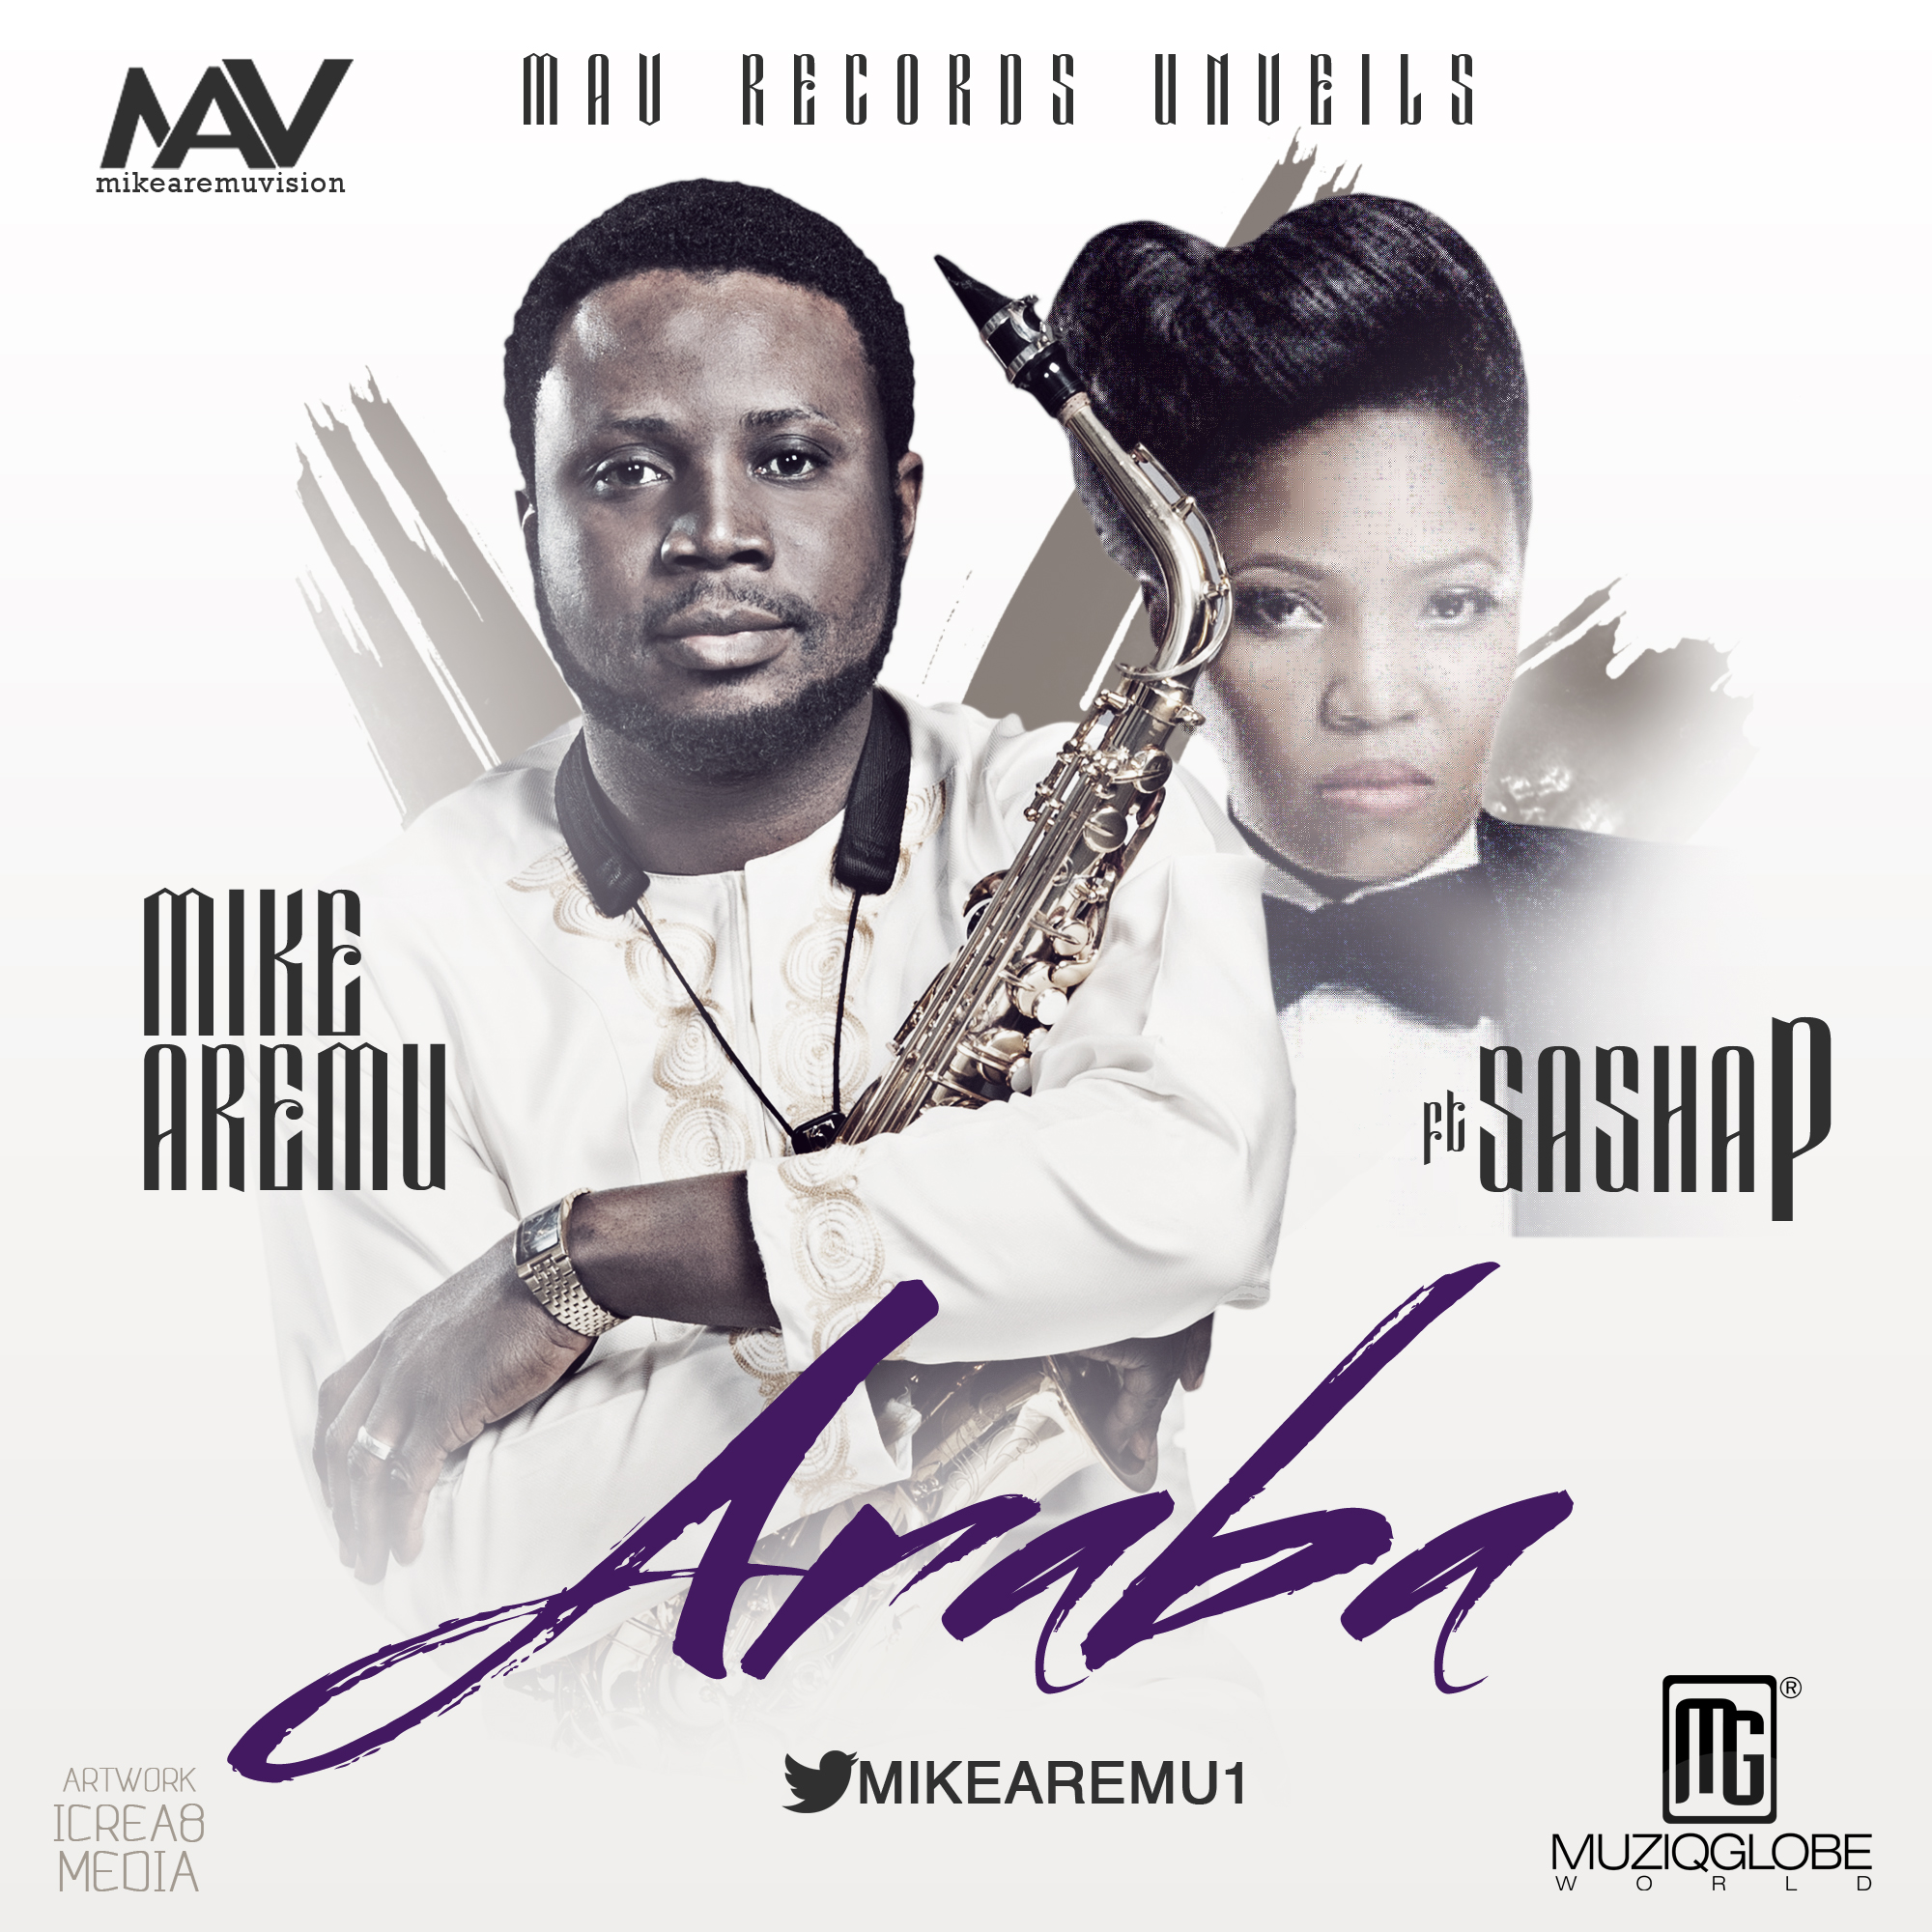 Mike Aremu ft Sasha P - Araba